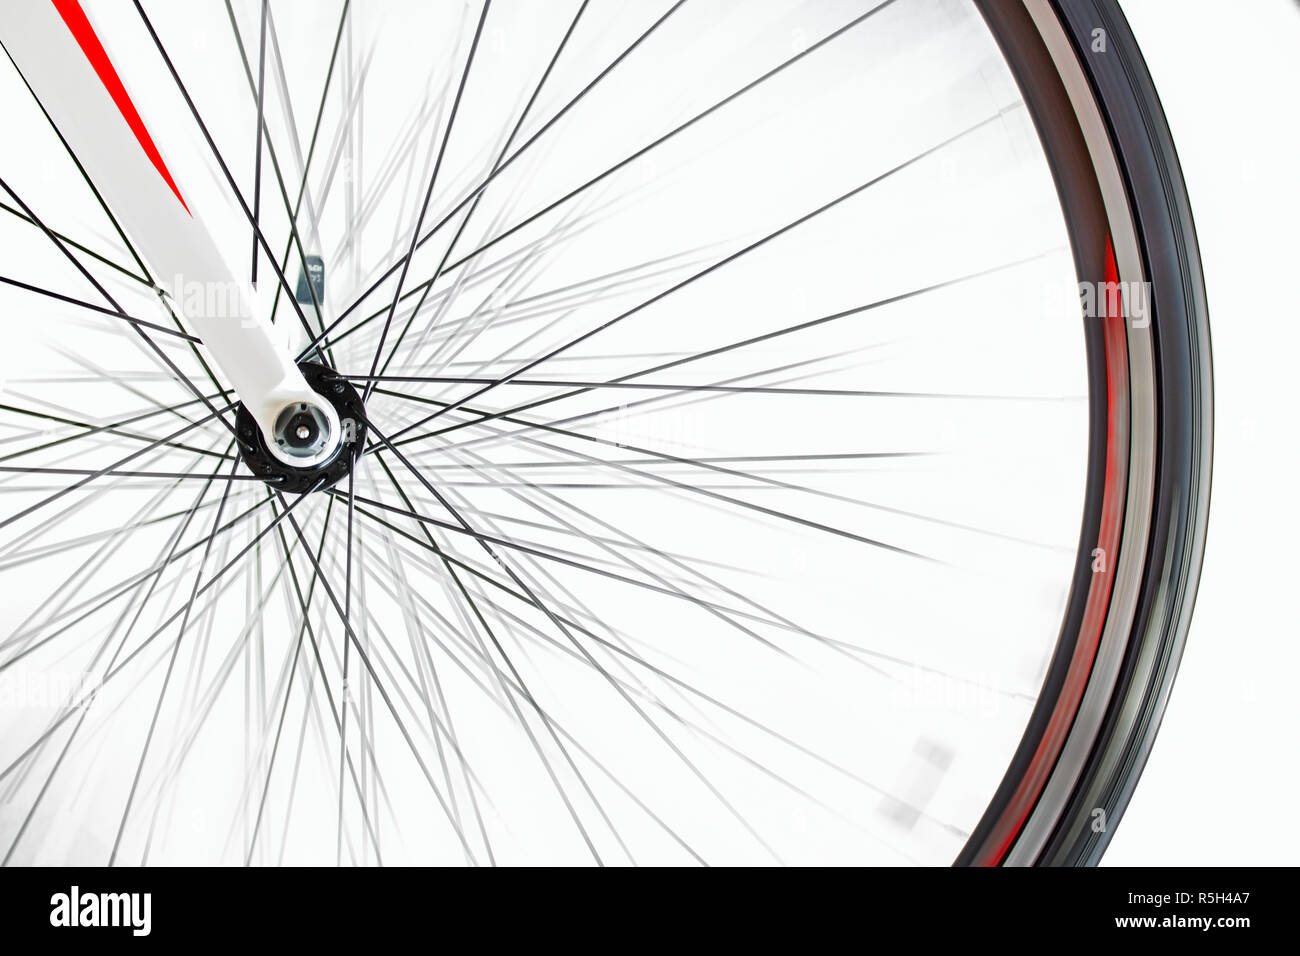 The front wheel of the bicycle rotates quickly on a white background. Detail of road bike while rotates. - Stock Image